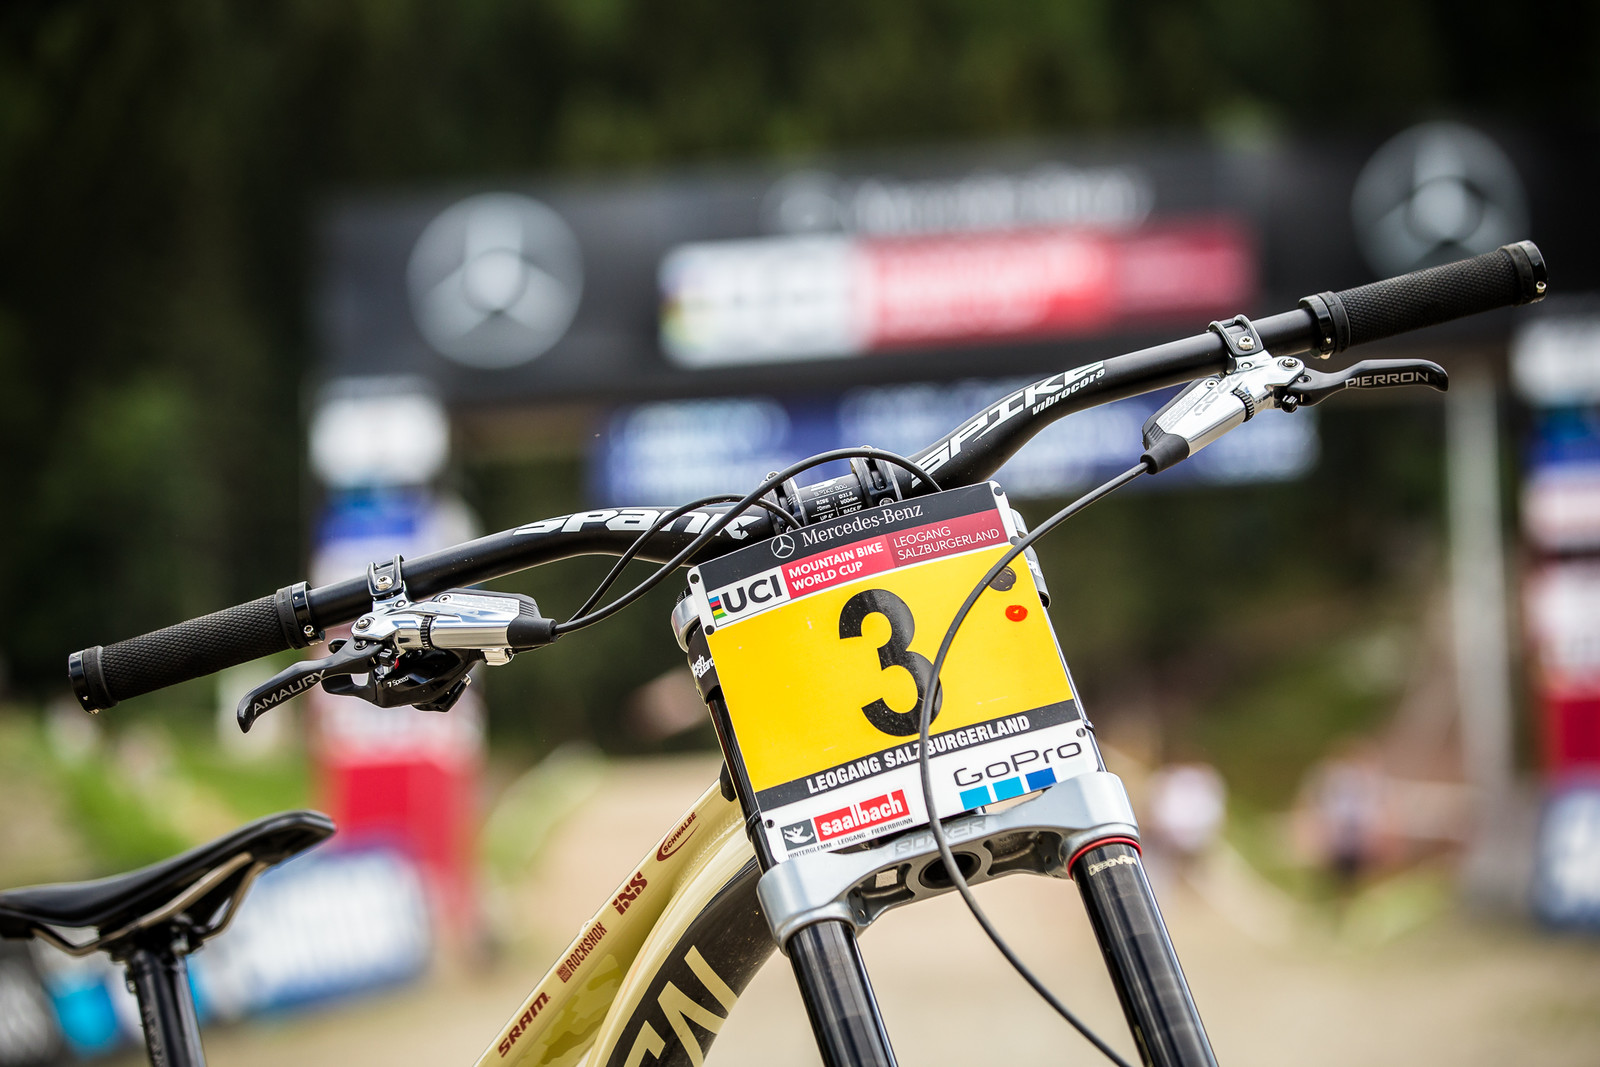 Spank Spike Vibrocore Bars - WINNING BIKE - Amaury Pierron's Commencal Supreme DH 29 - Mountain Biking Pictures - Vital MTB